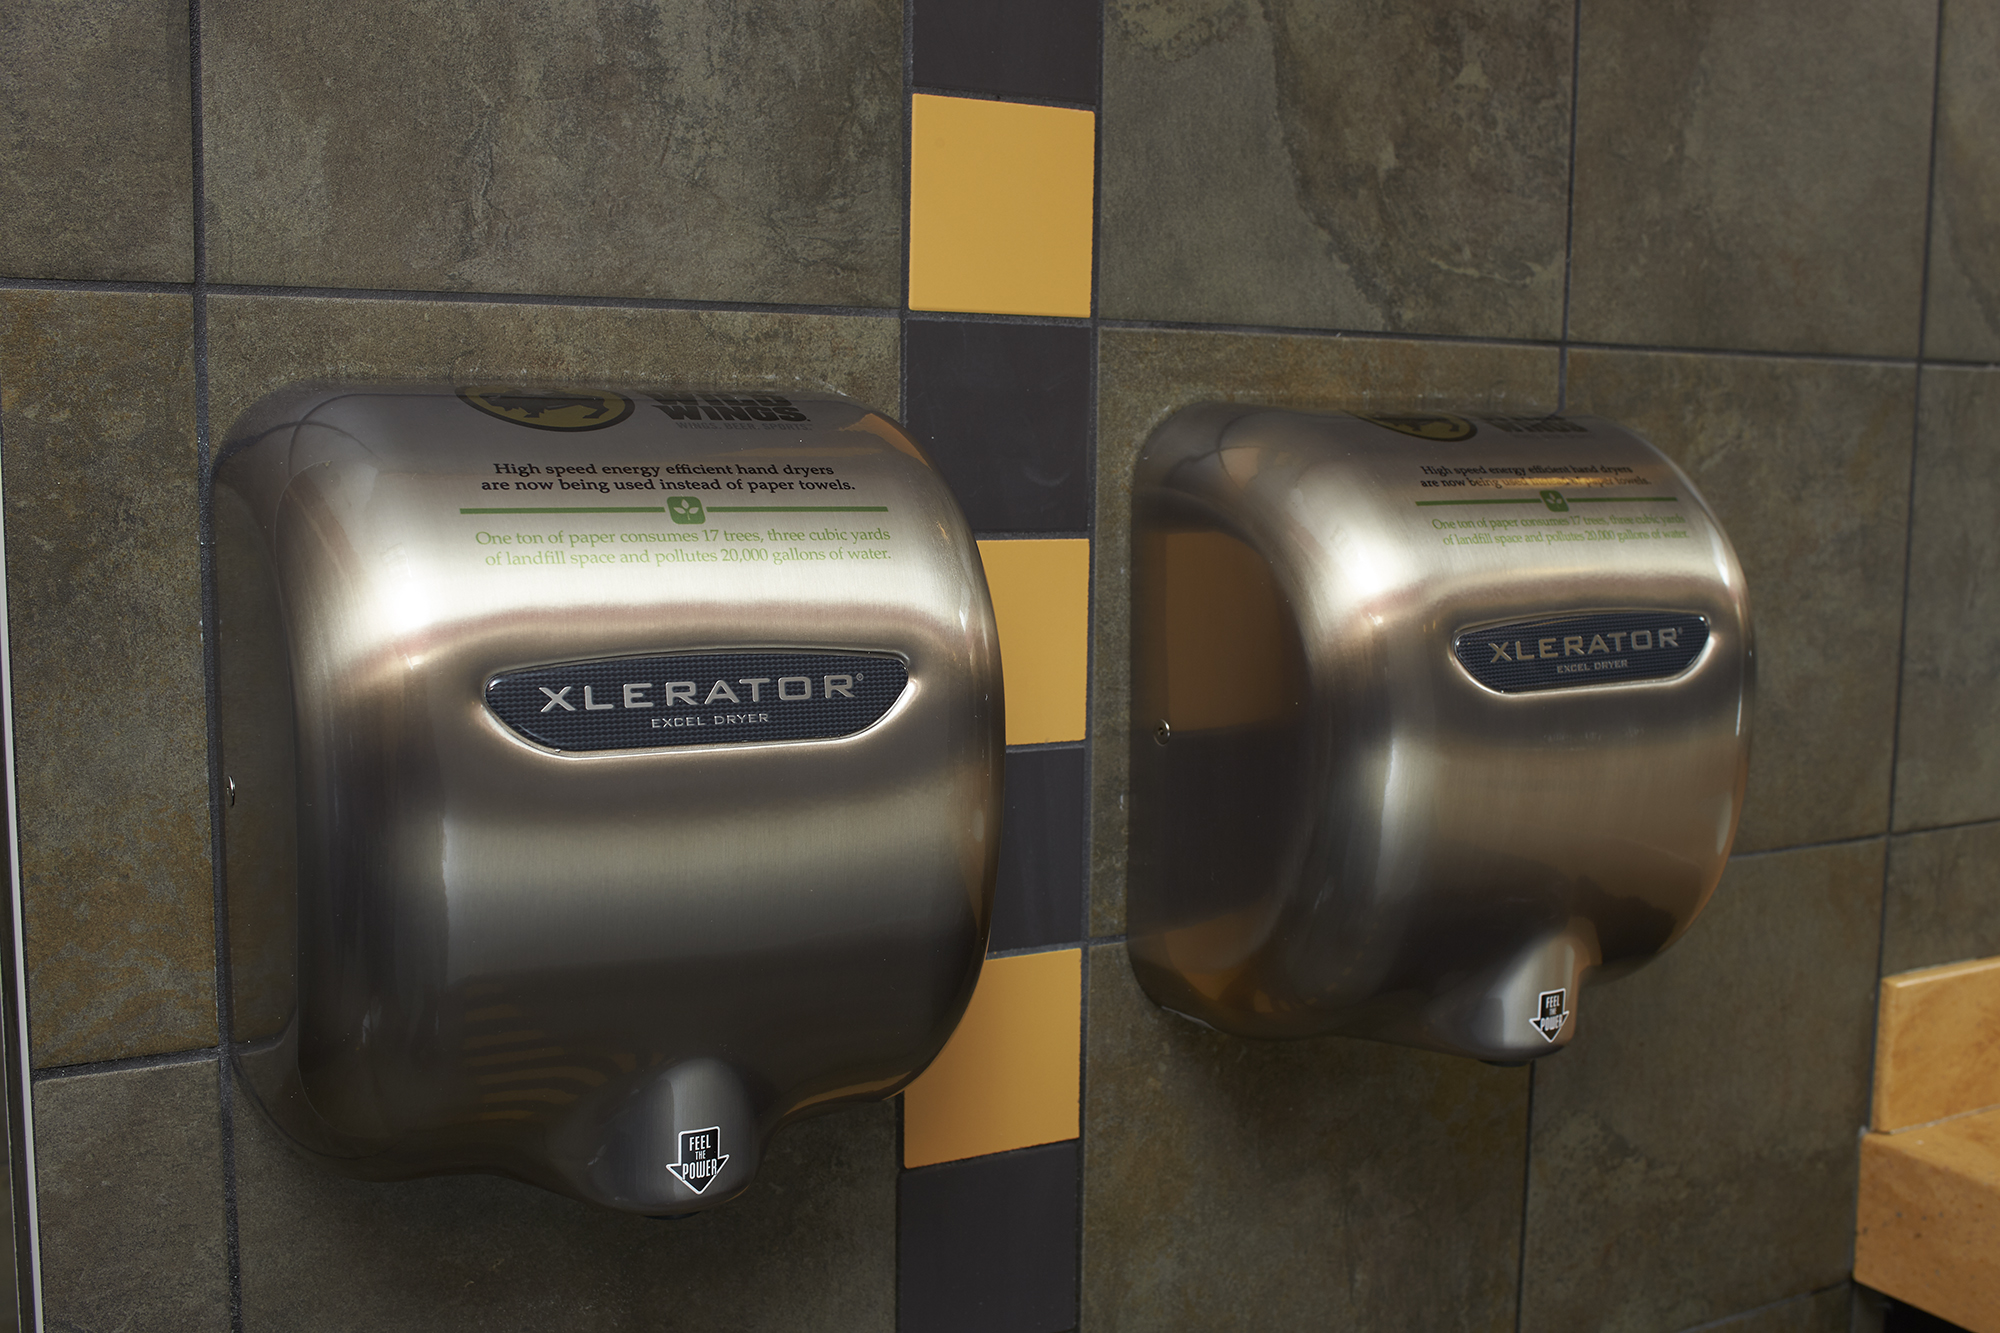 Hand Dryer Xlerator Elegant Interesting Commercial Bathroom Wiring Diagram Perfect Excelus Product Lines Feature With